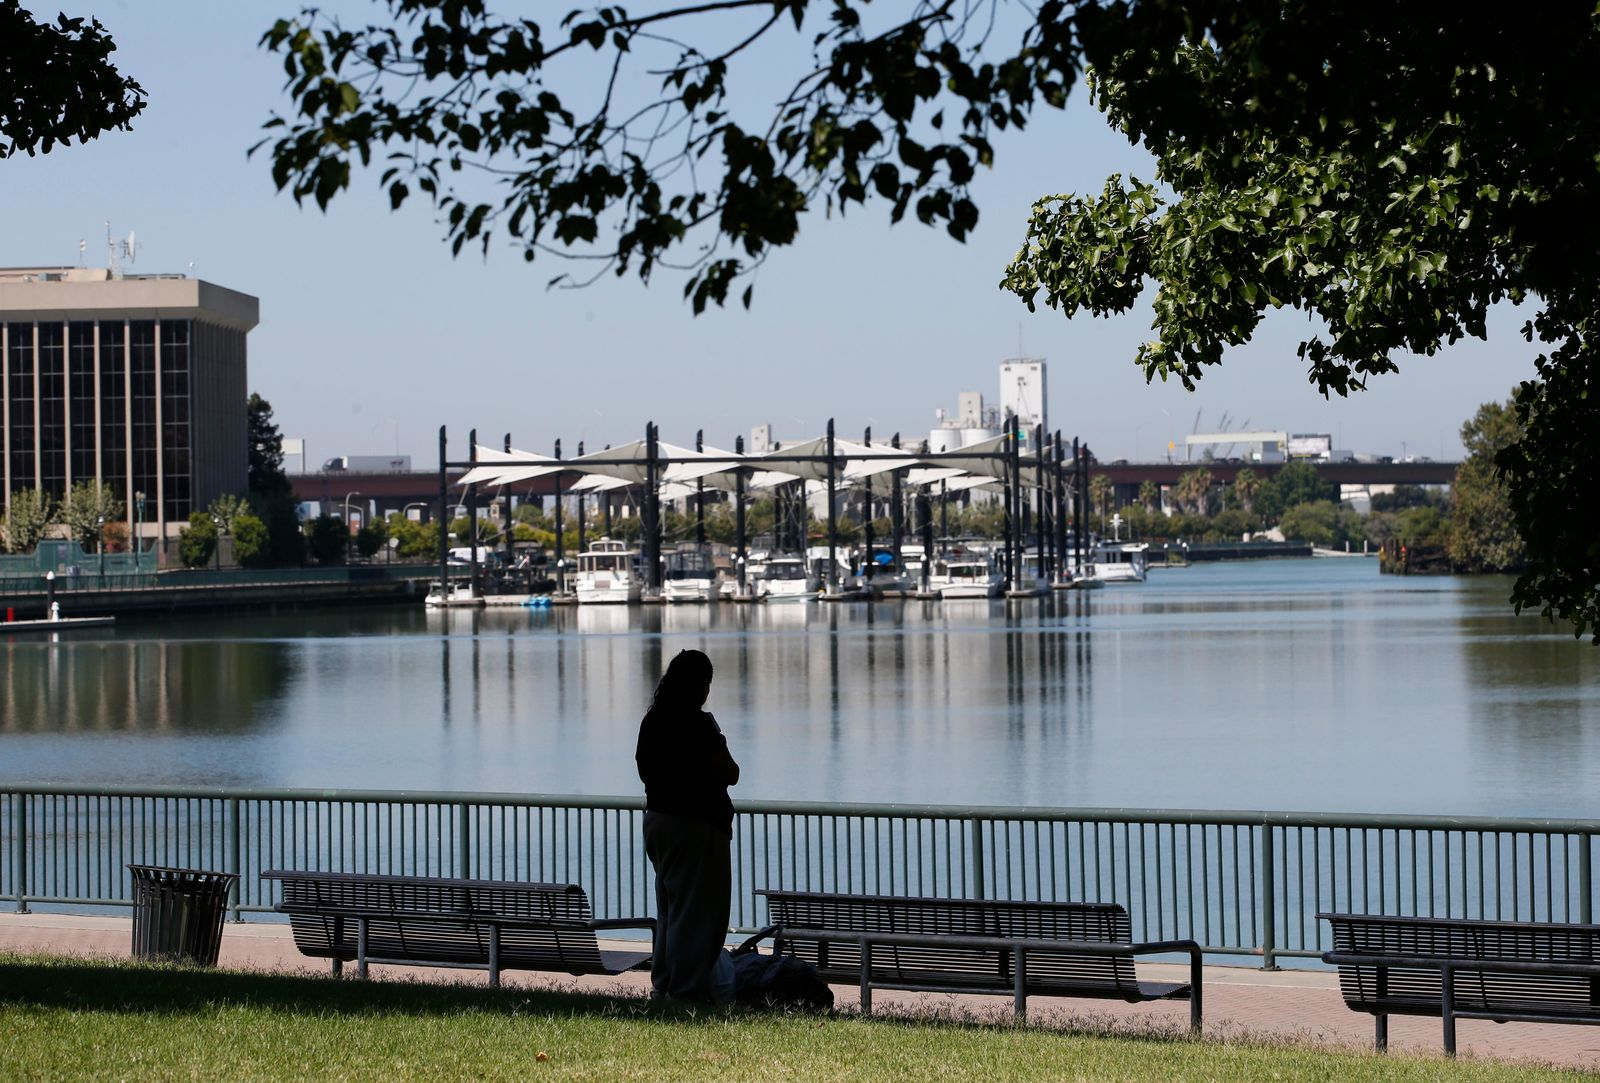 In this photo taken Wednesday, Aug. 14, 2019, a visitor takes in the view of the waterfront in Stockton, Calif. The area as been targeted for redevelopment as Stockton continues to revere from the Great Recession when it known as the foreclosure capital of the country and for one of the nation's largest municipal bankruptcies. Now, it's led by Mayor Michael Tubbs who has initiated a program to give 125 people who earn at or below the median household income of $46,033 receive a $500 debit card each month to spend any what they want. Tubbs says the program, which is privately funded, could be a solution to the city's poverty problem. (AP Photo/Rich Pedroncelli)